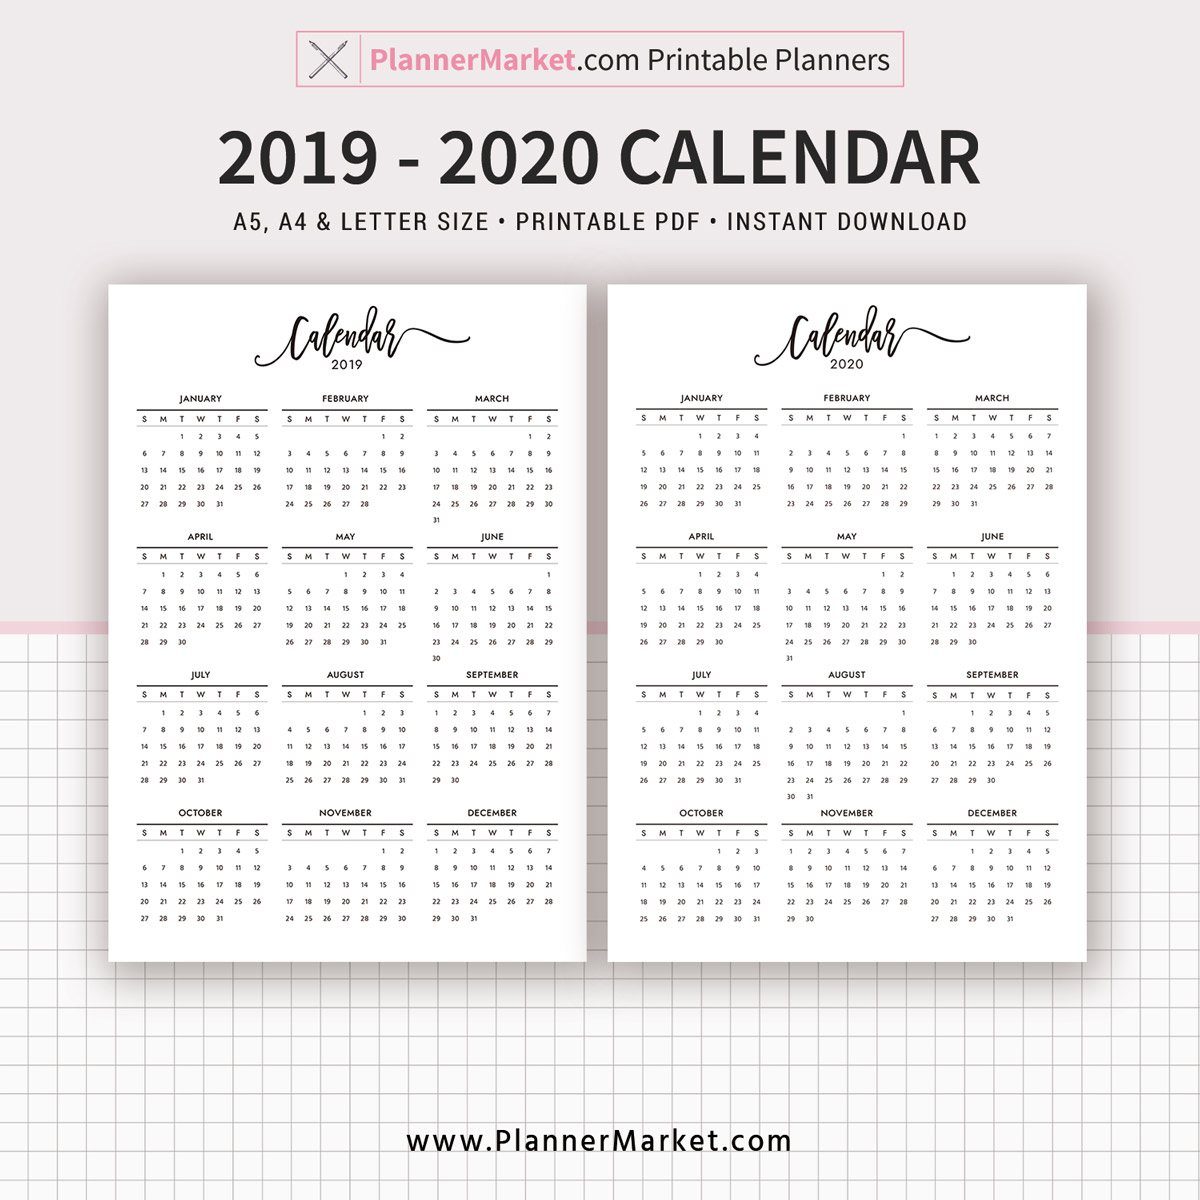 2019-2020 Yearly Calendar Printable, Filofax A5, A4, Letter Size, Planner  Refill, Planner Pages, Planner Inserts, Instant Download for 2020 Free Printable 8.5 X11 Monthly Calendars